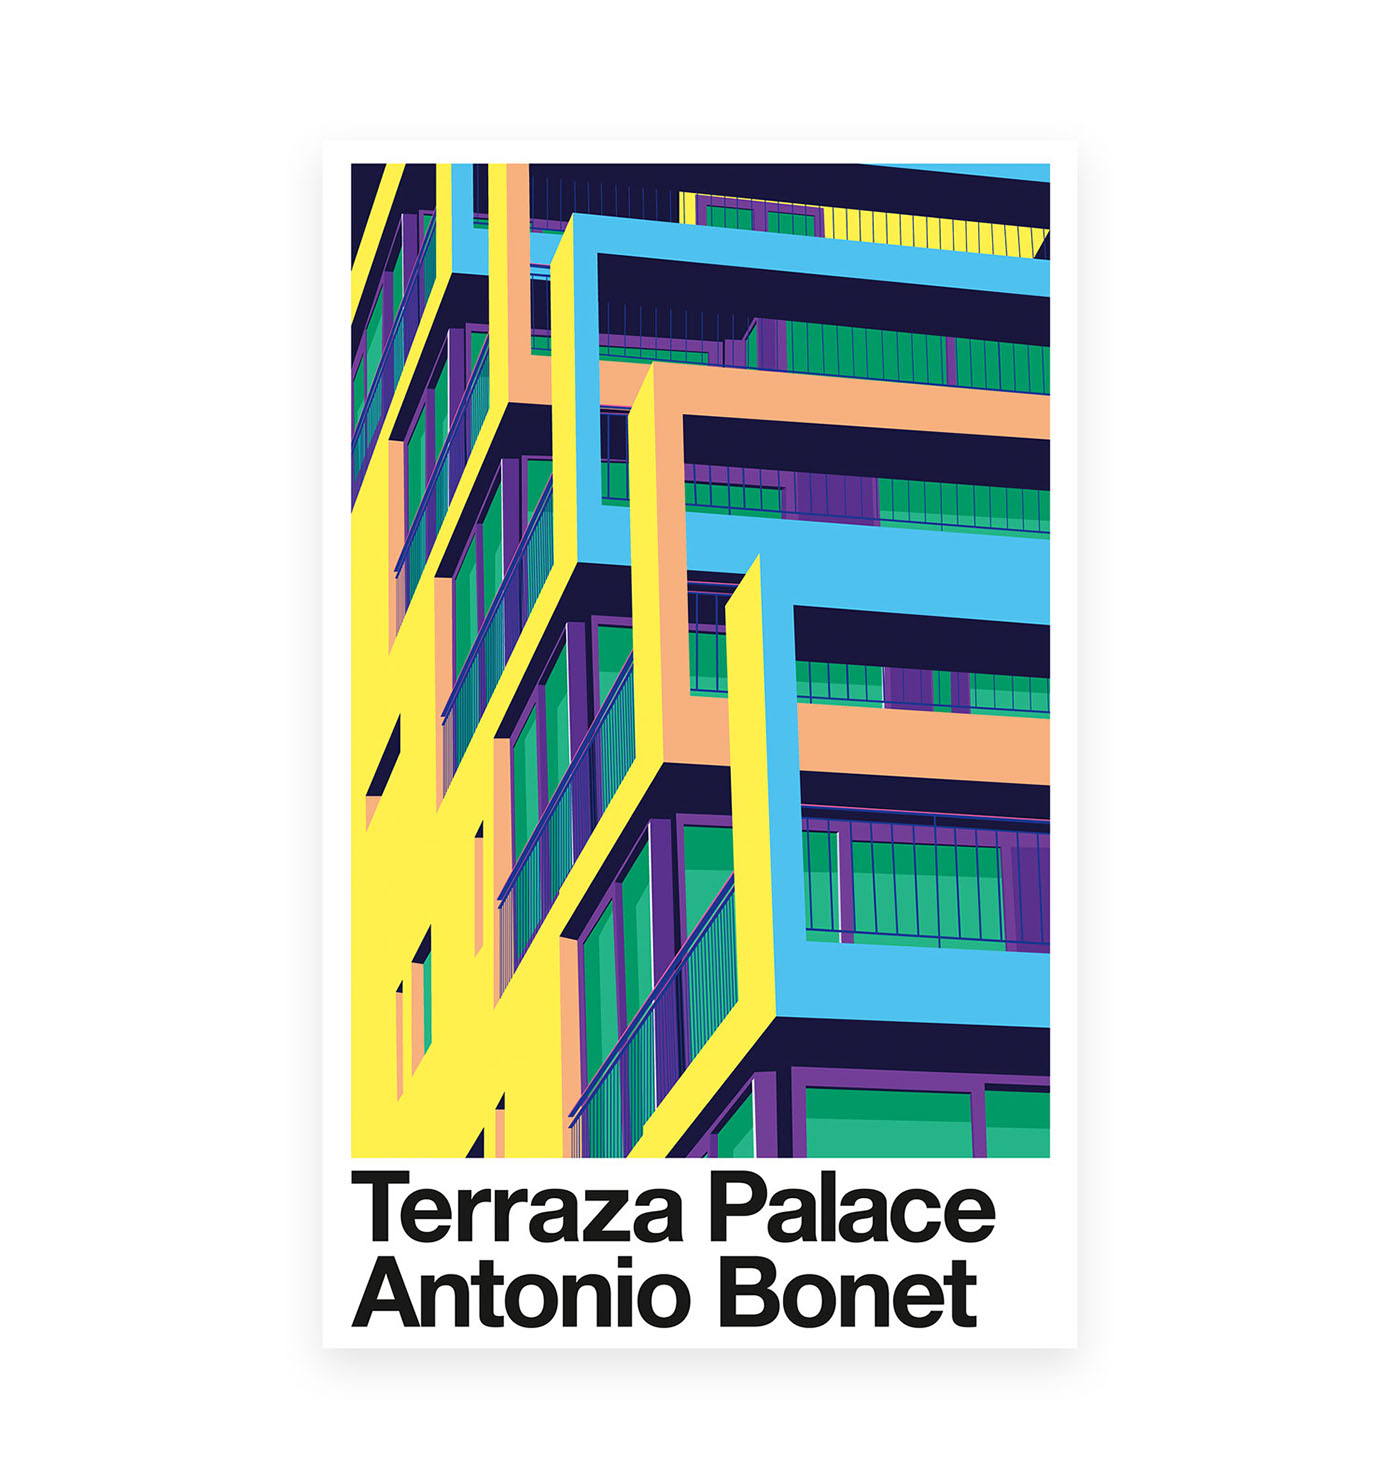 An Ode to Antonio Bonet by The 21 Night